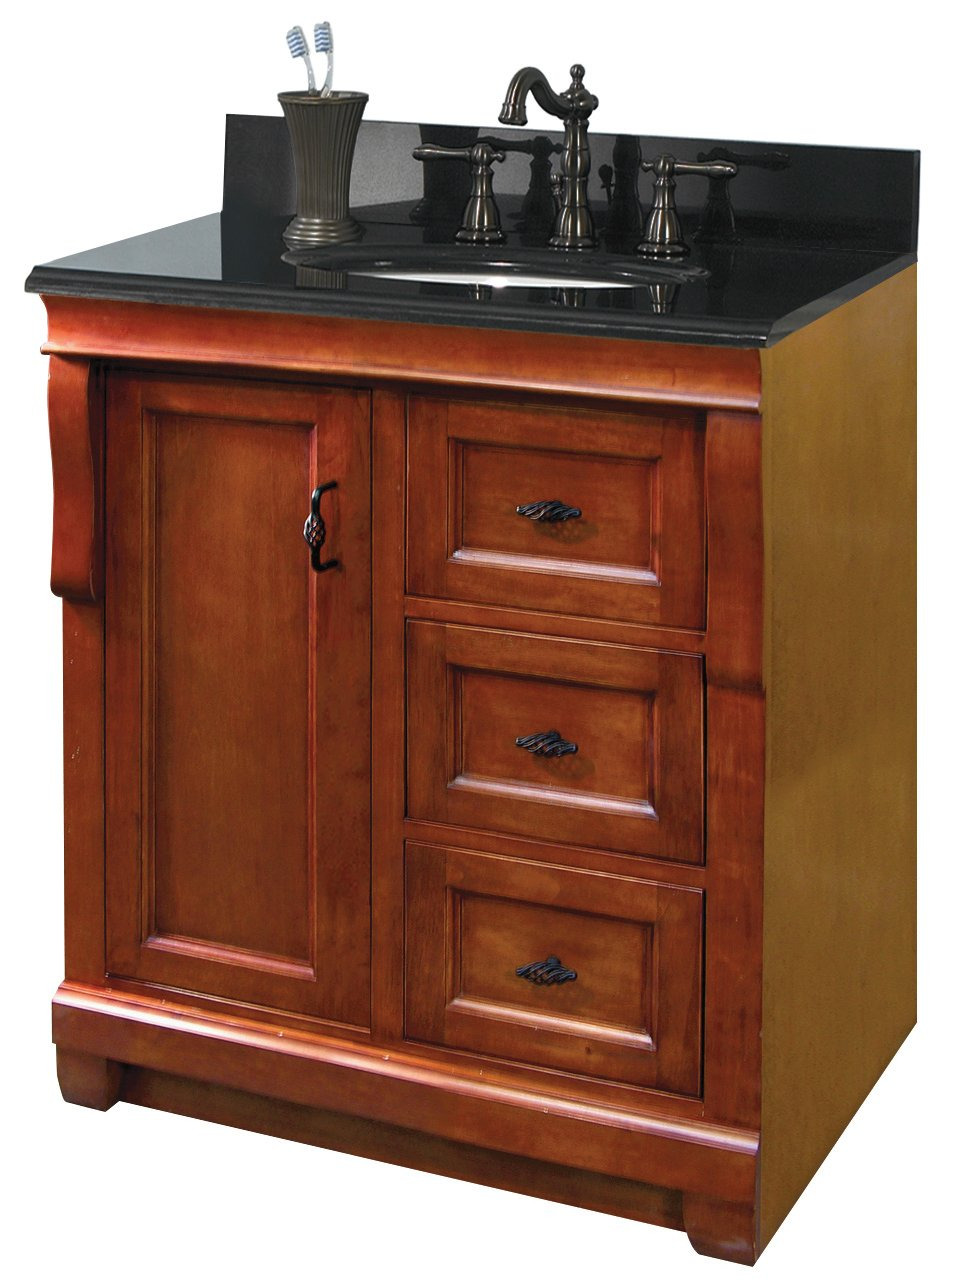 30 Inch Bathroom Vanities 30 Inch Bathroom Vanities At